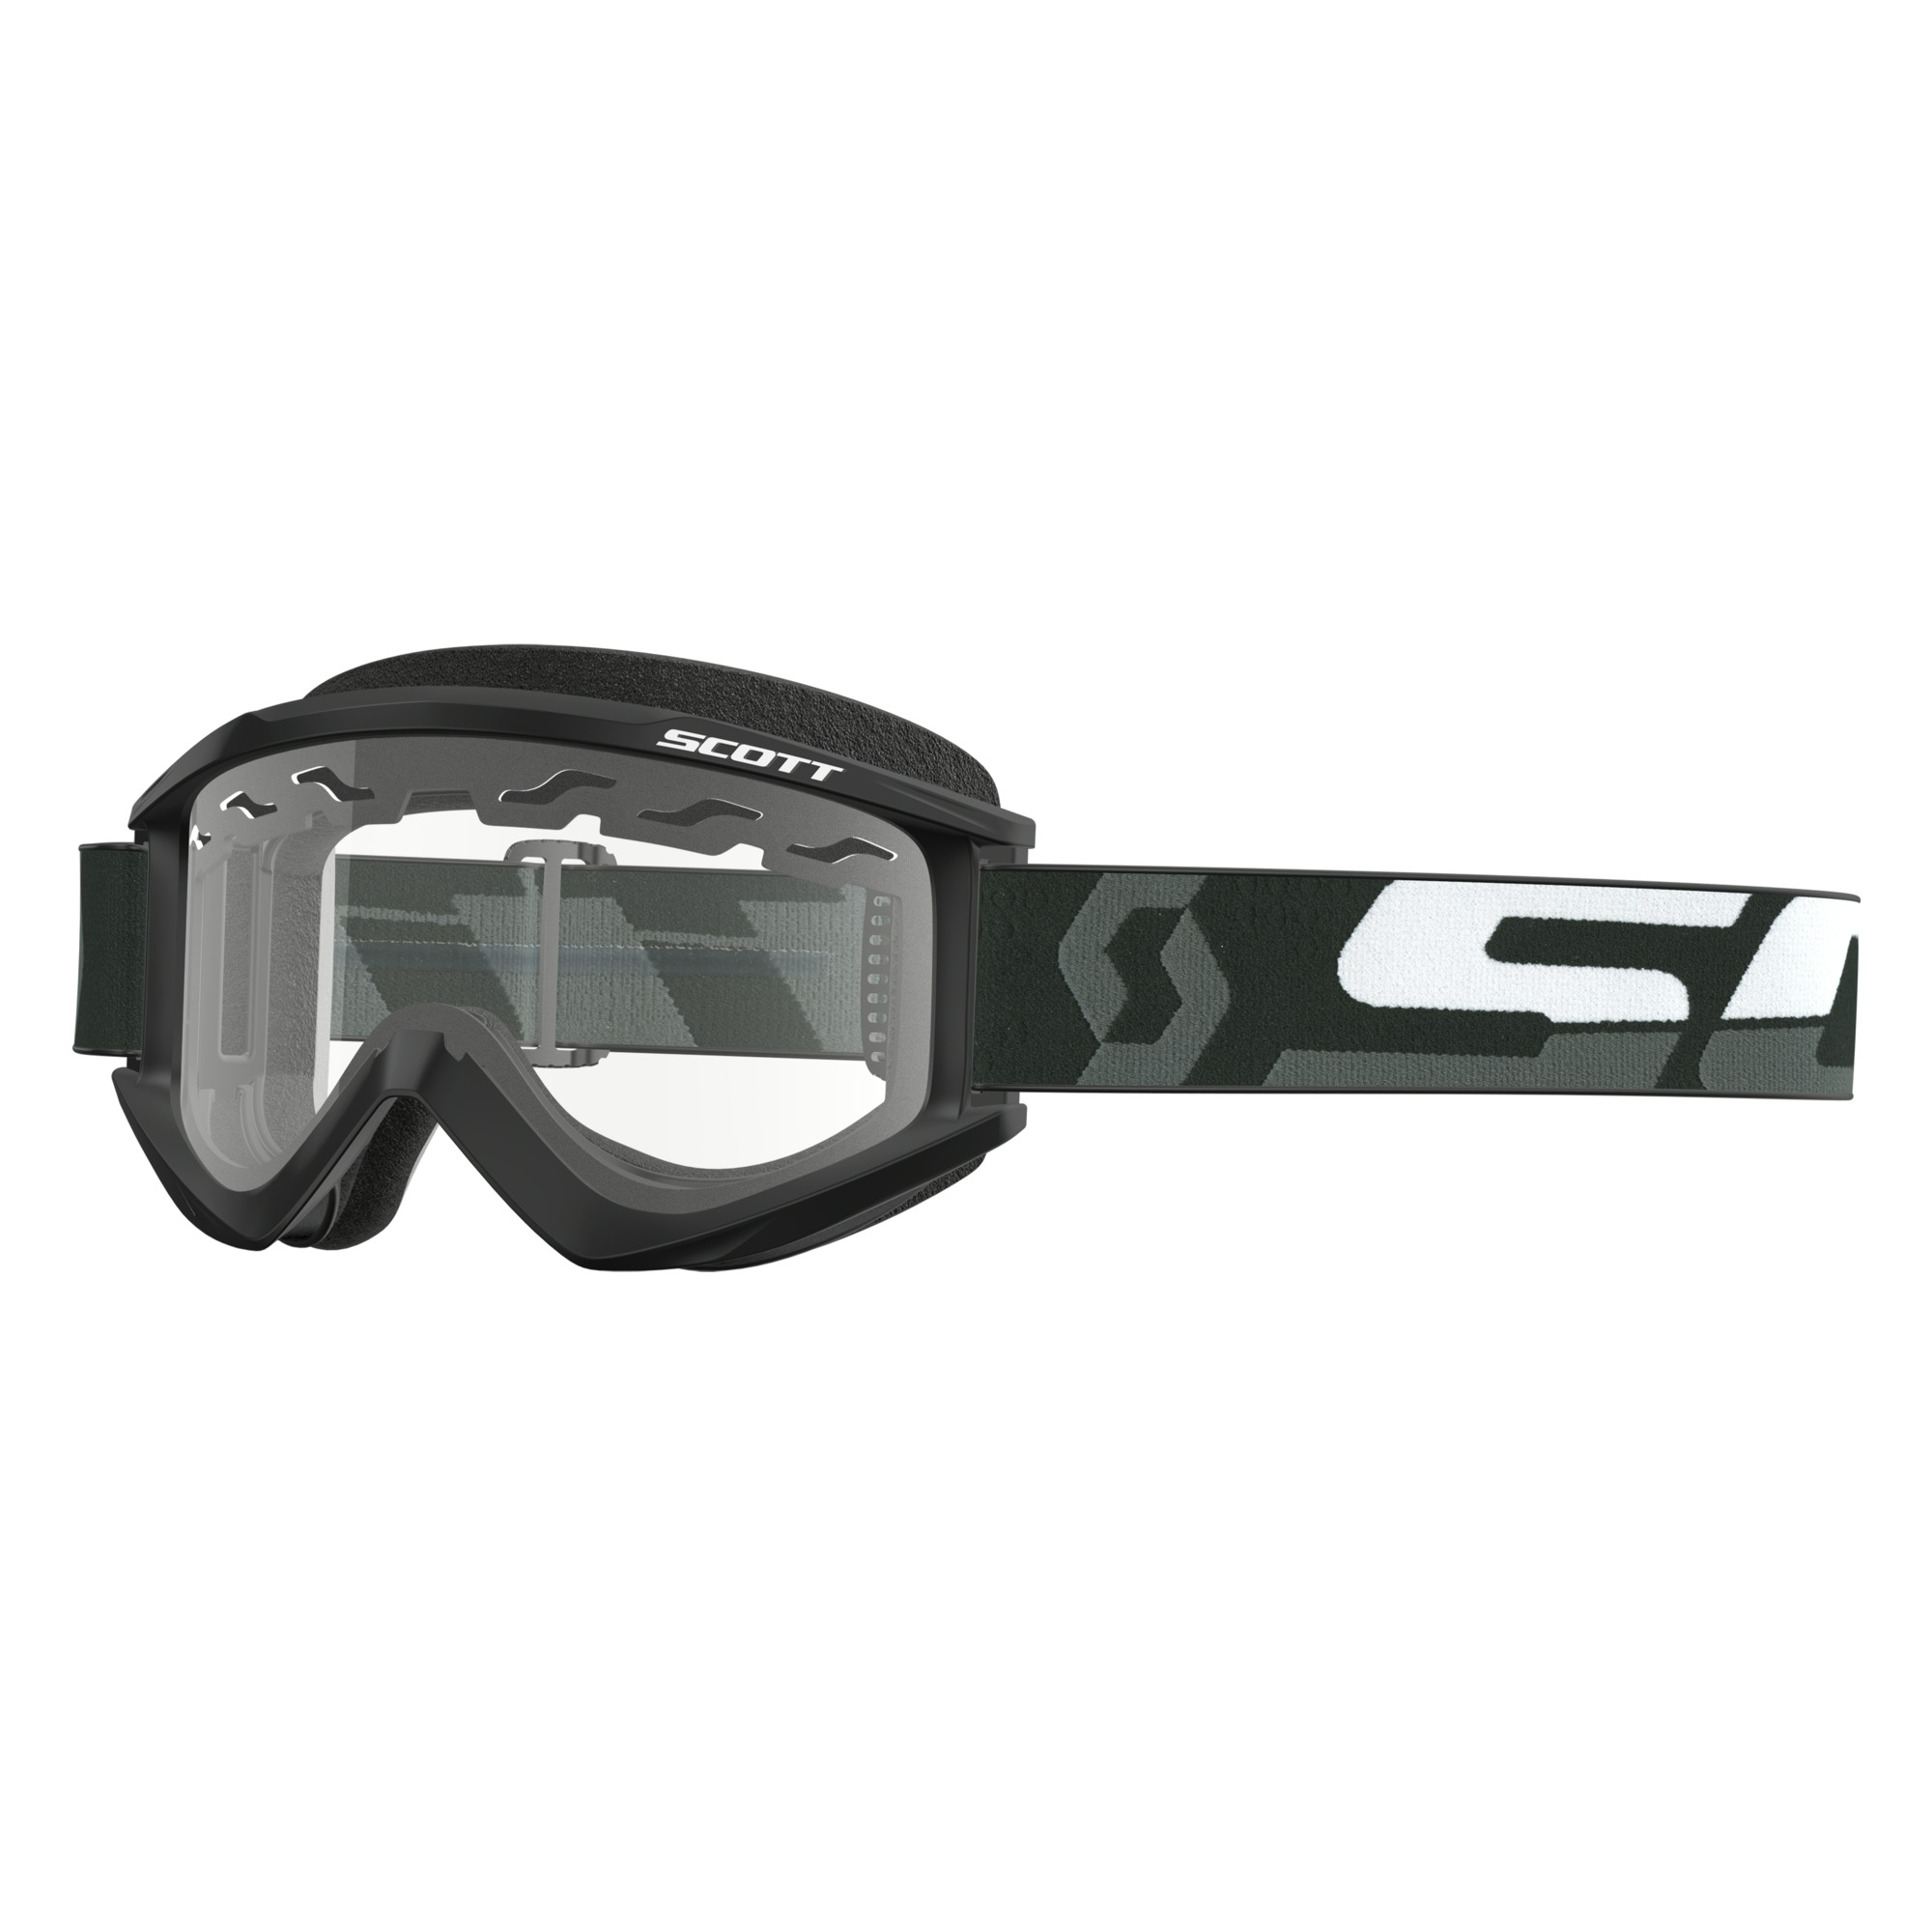 SCOTT Recoil Xi Enduro Goggle